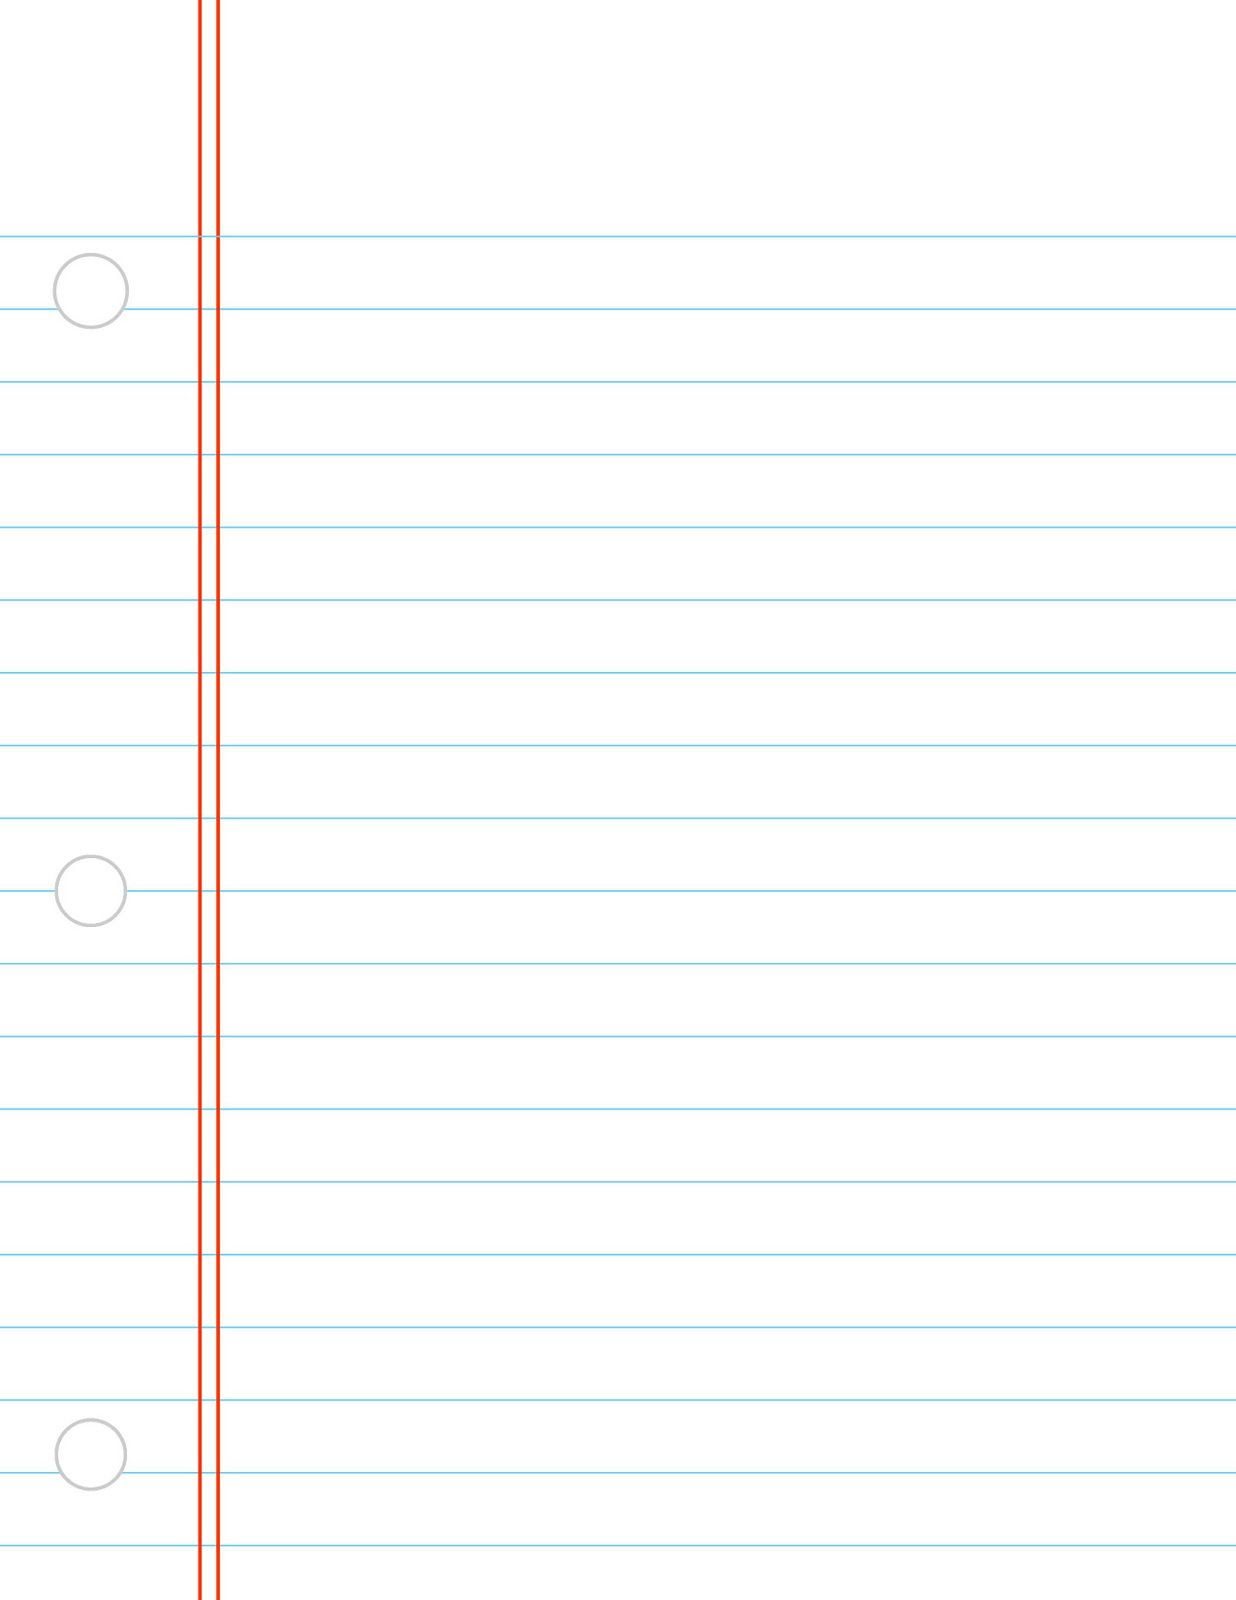 printable lined writing paper template | Education | Pinterest ...